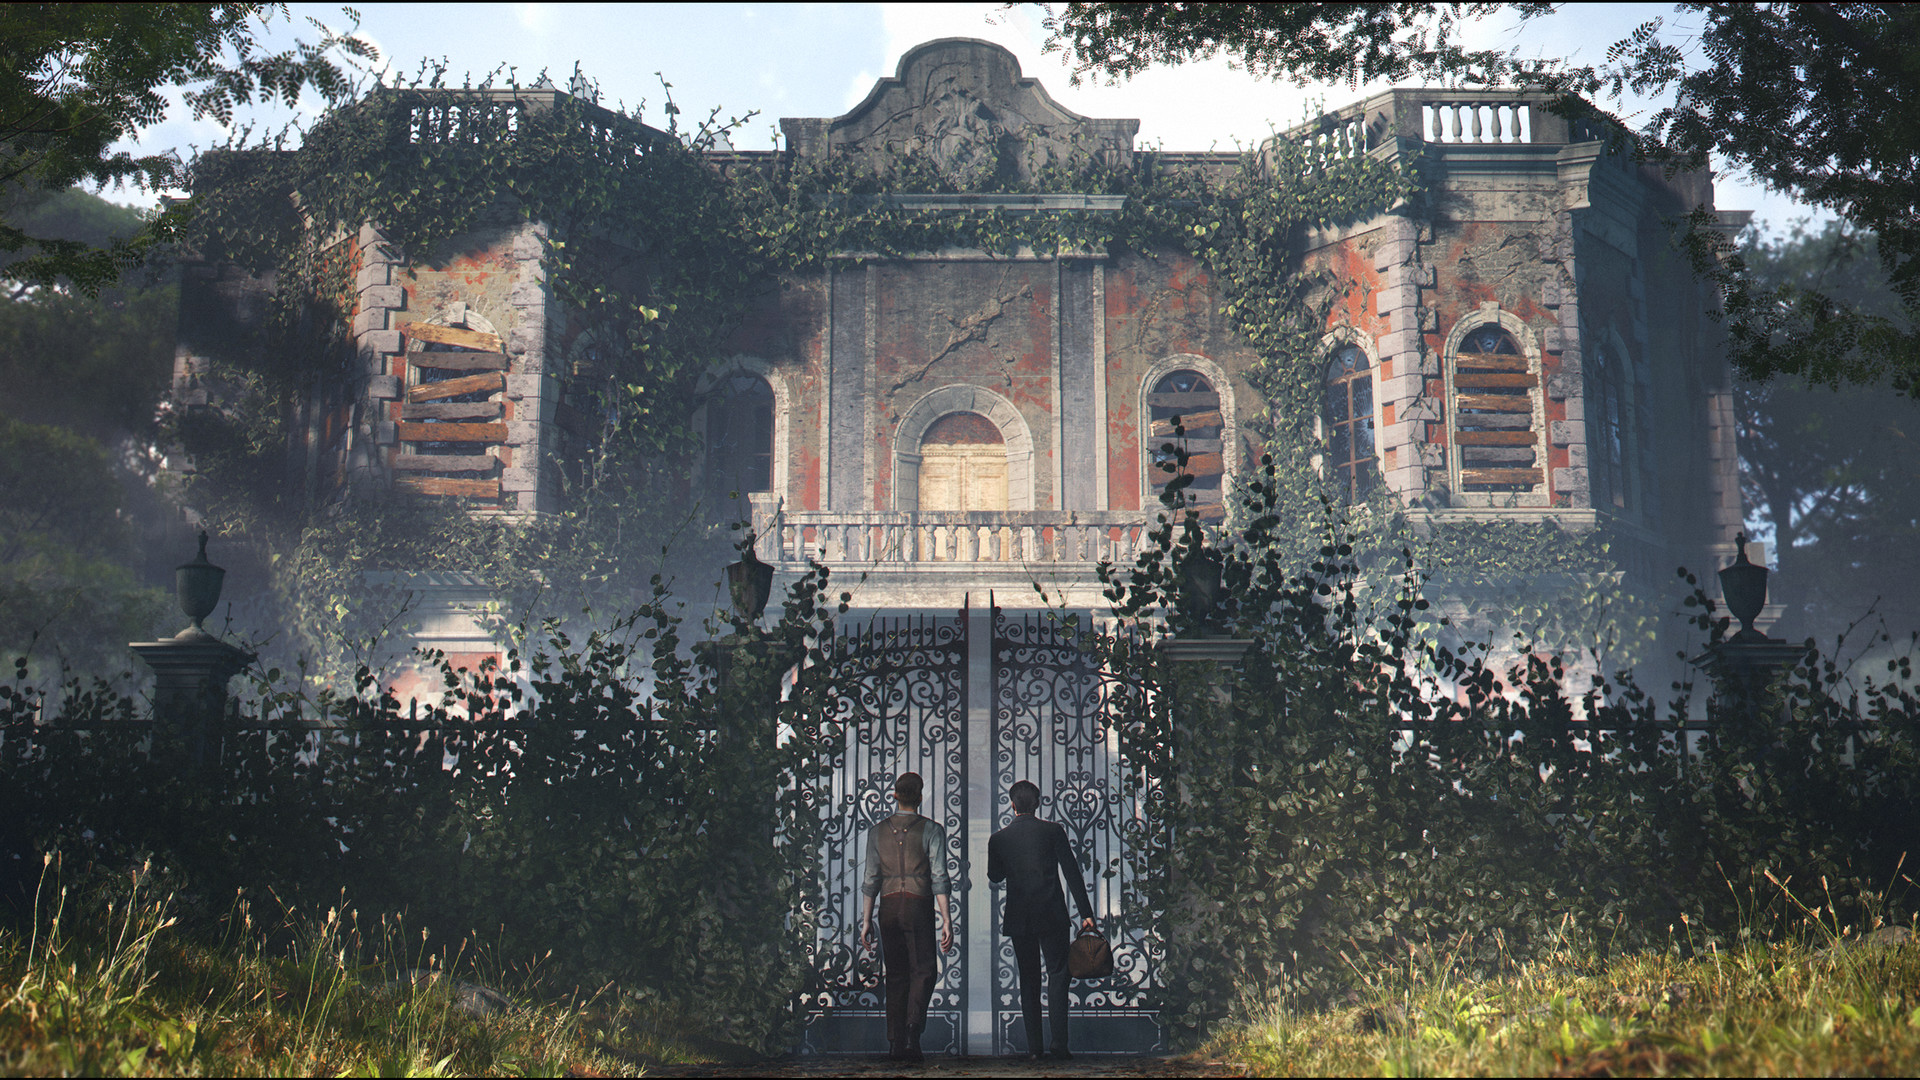 Young Holmes, accompanied by another man of similar age and height, is standing in front of the partially opened iron gates of a stately home. It is mostly going to ruin, with boarded up windows and ivy covering the front of the house